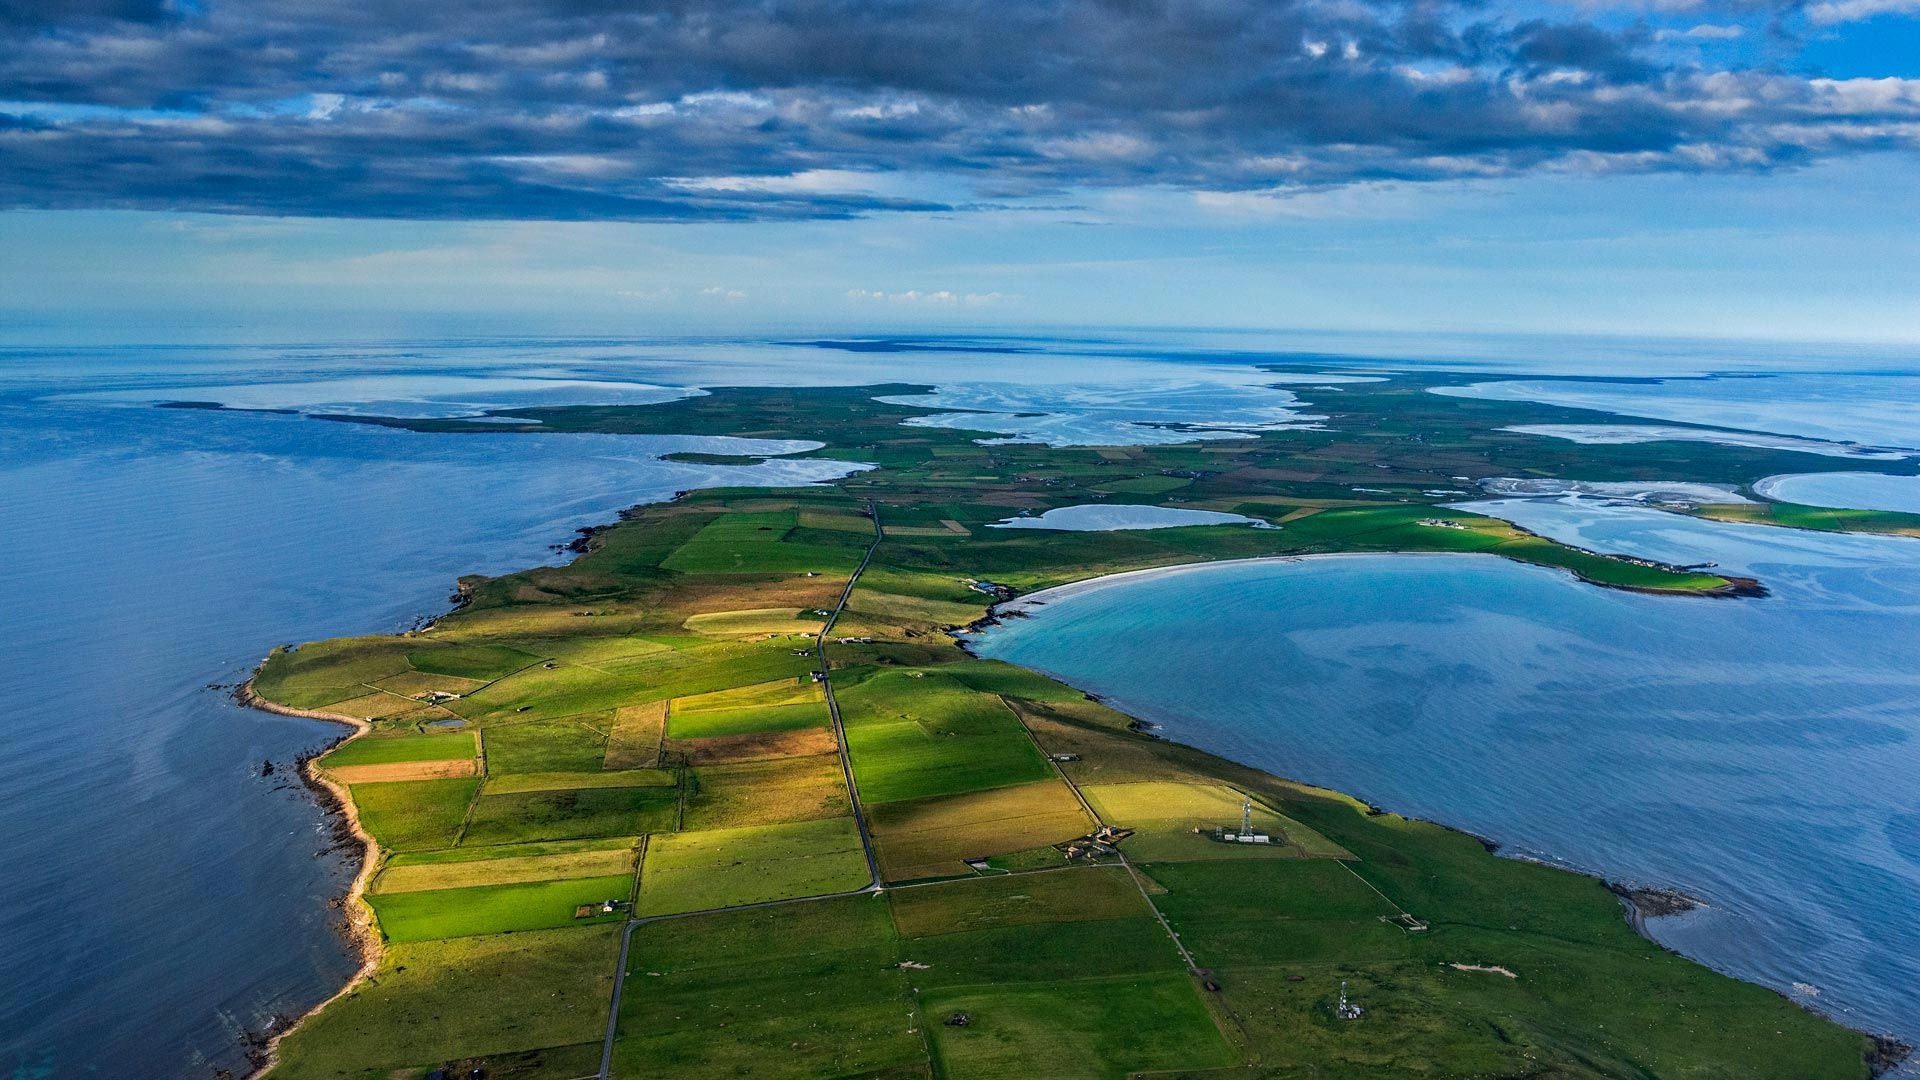 The island of Sanday in Orkney, Scotland